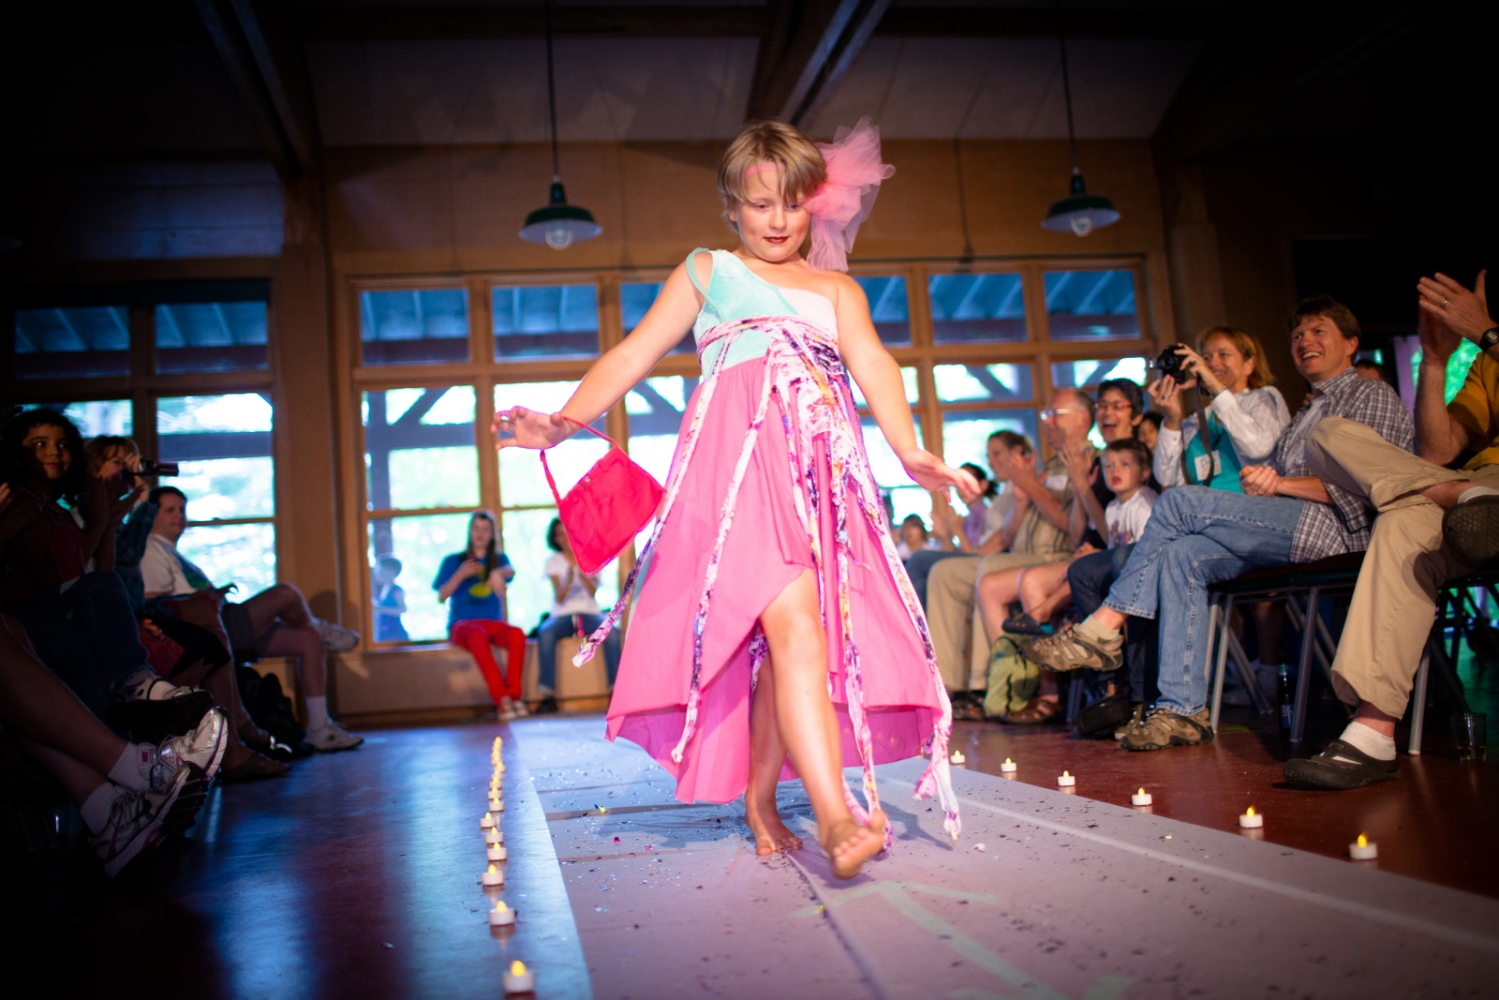 A camper walks down the runway with the enthusiastic support from the camp community.